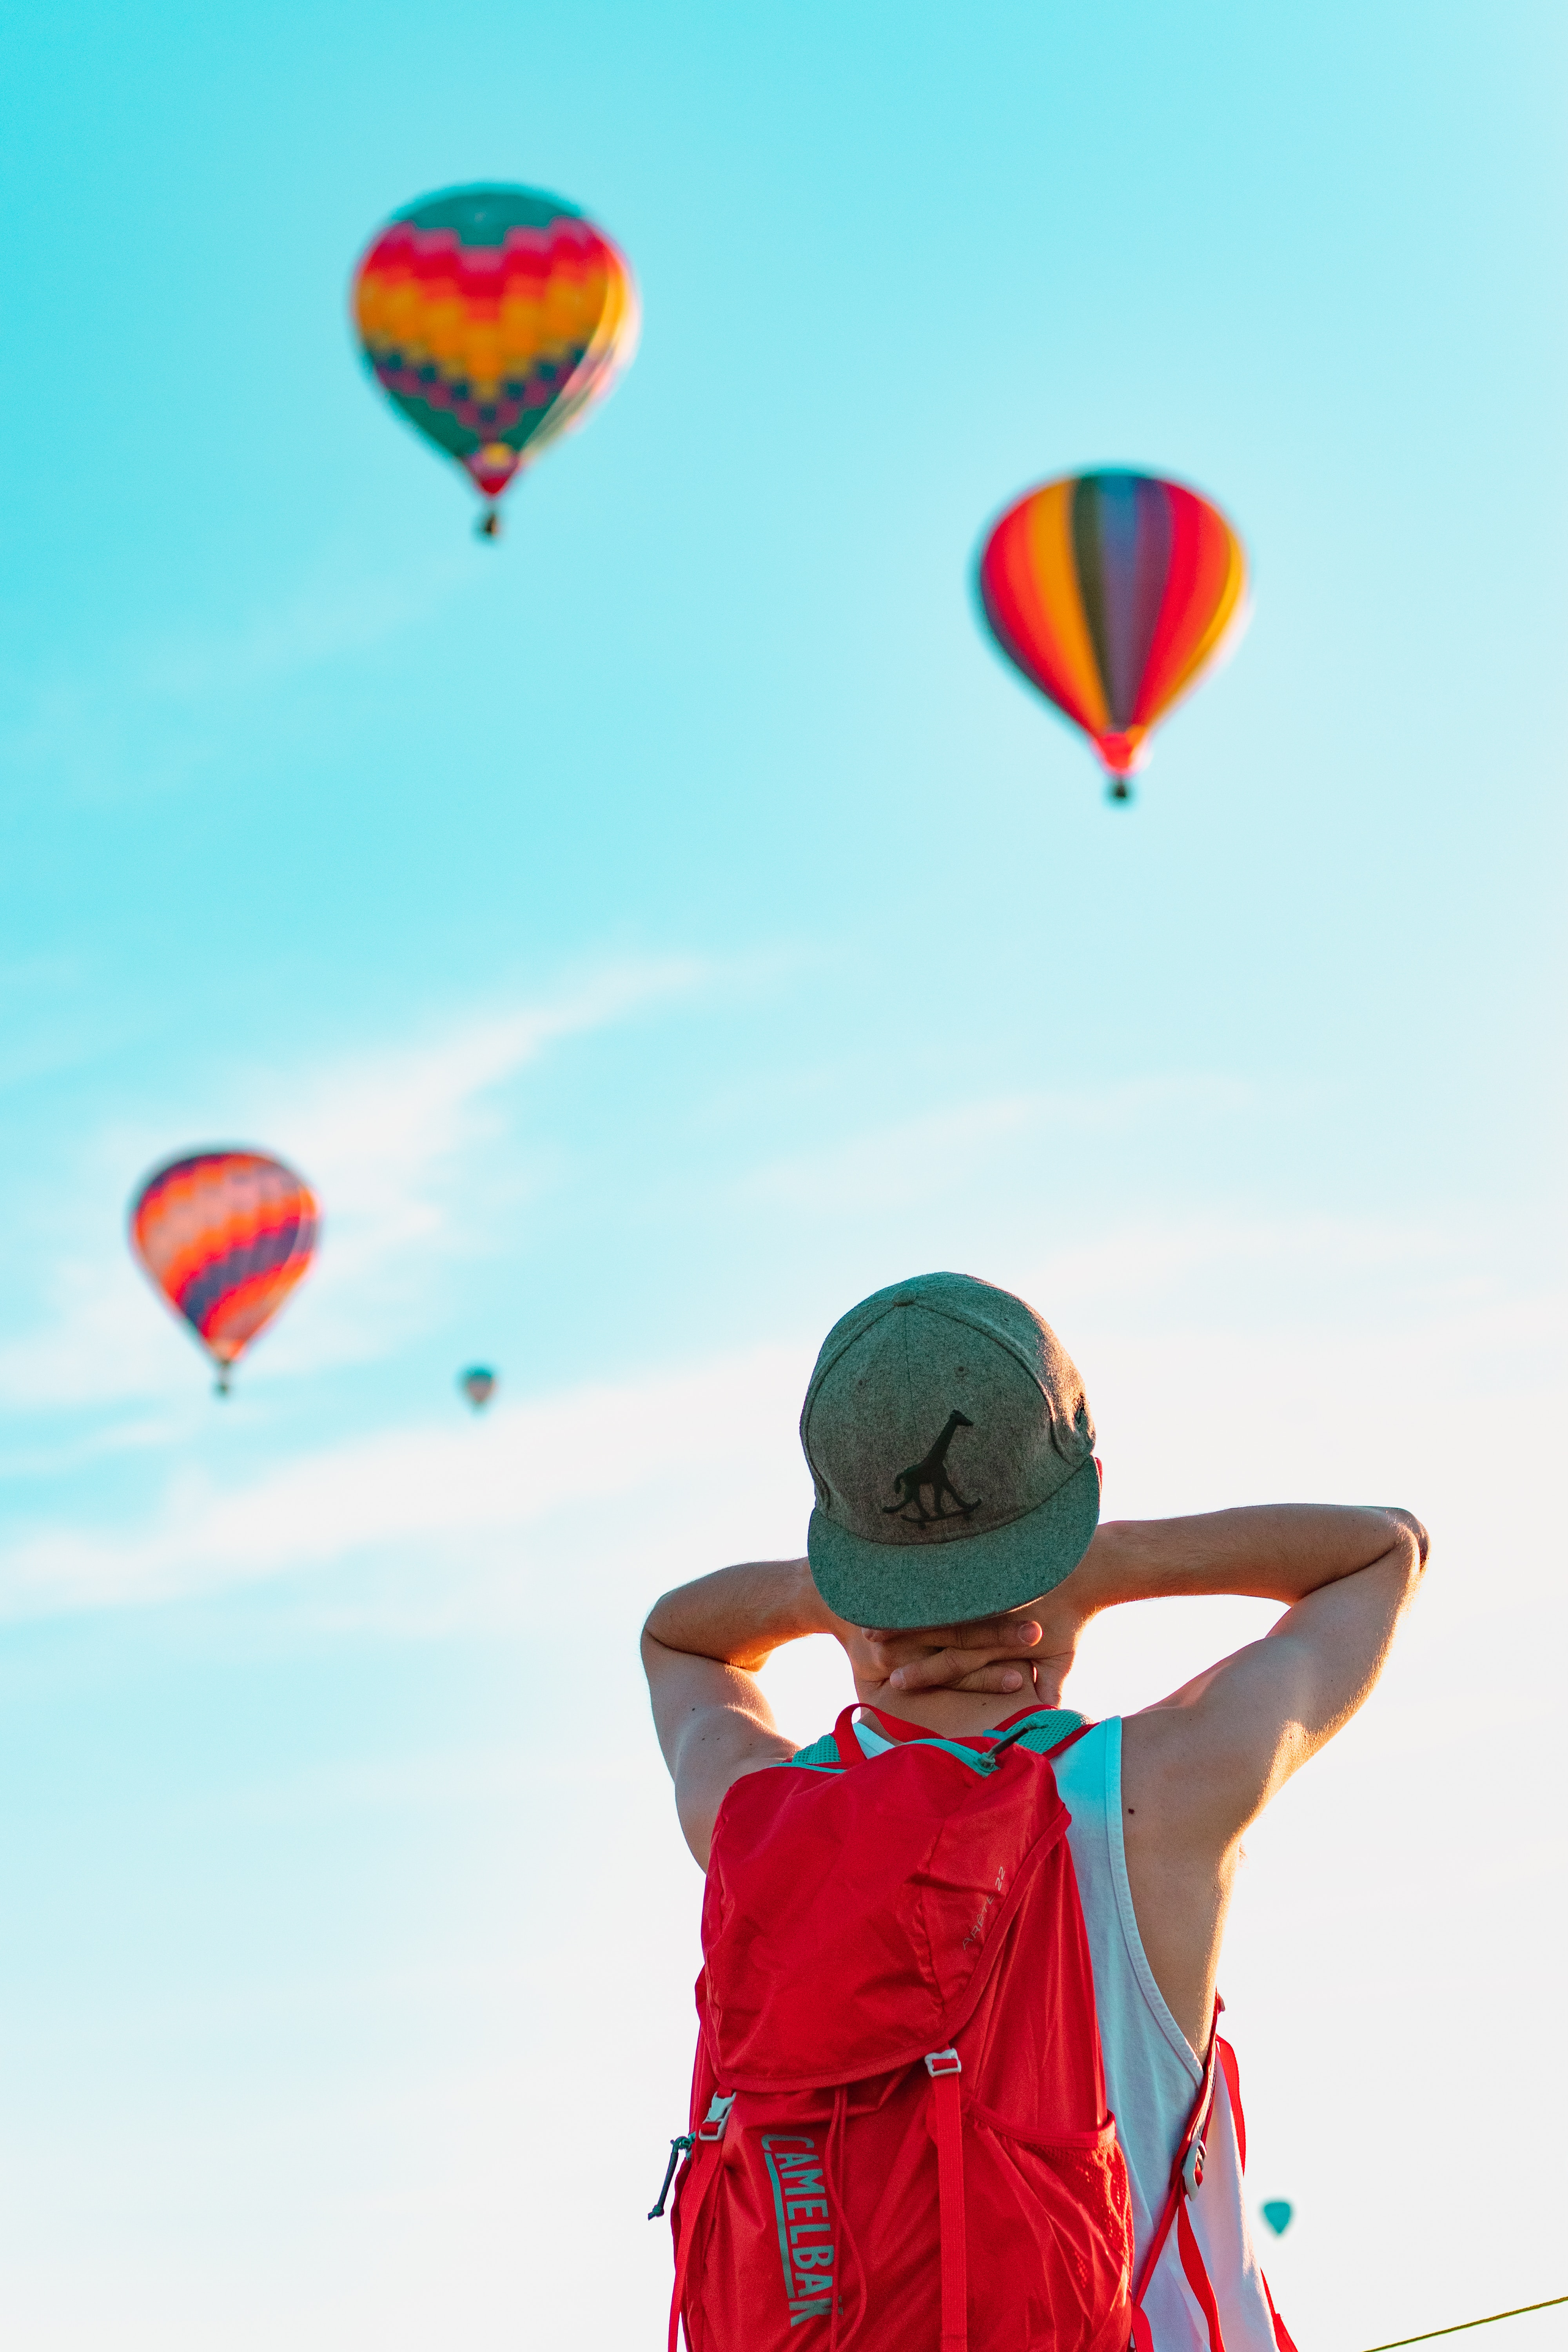 142635 Screensavers and Wallpapers Balloons for phone. Download Sky, Balloons, Miscellanea, Miscellaneous, Cap, Human, Person, Backpack, Rucksack pictures for free